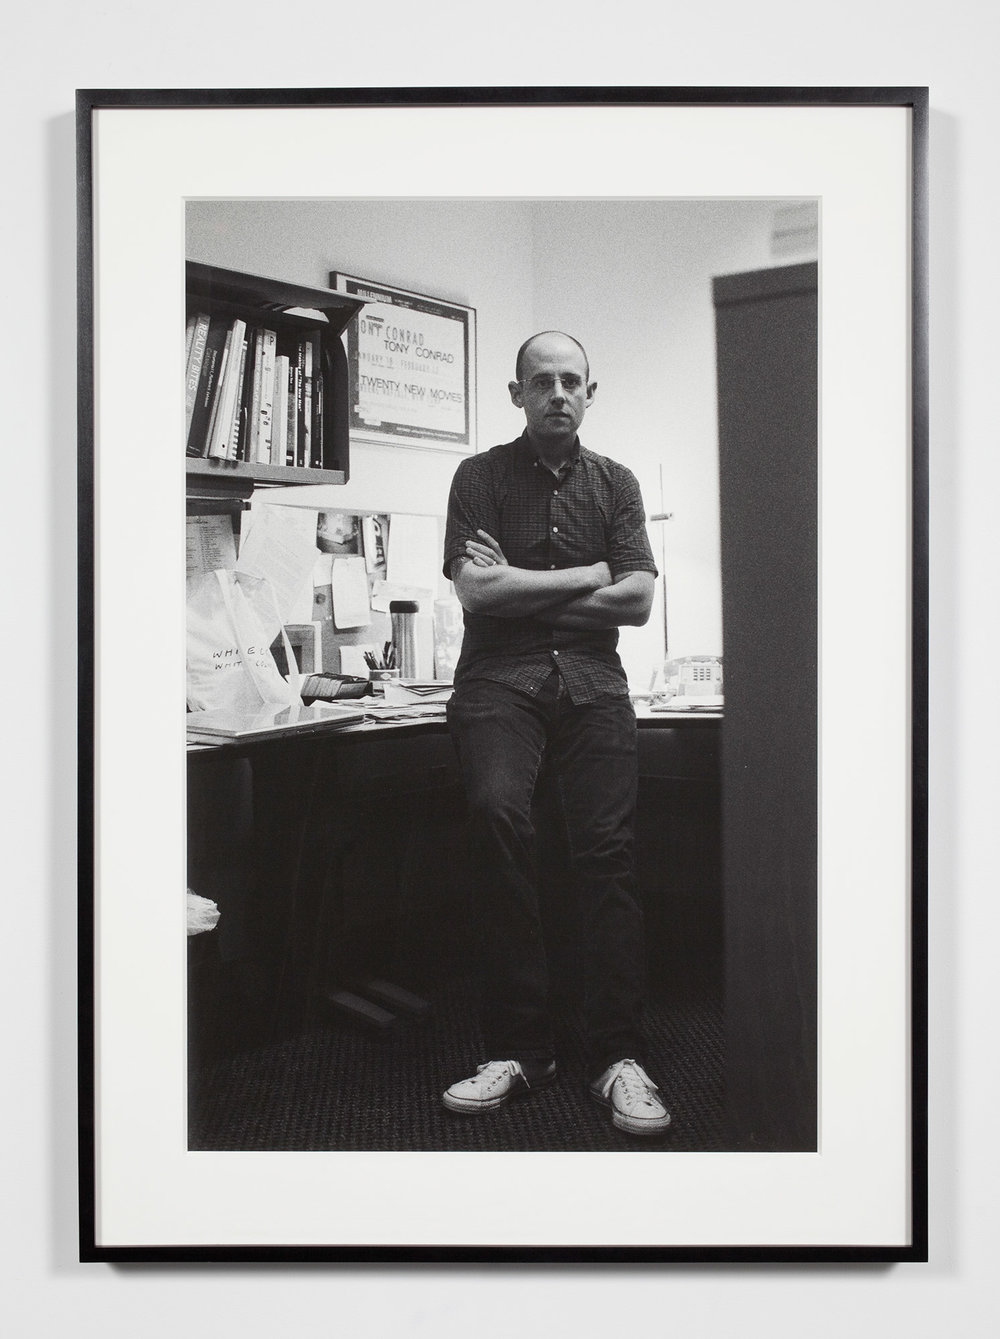 University Museum Associate Curator, Ann Arbor, Michigan, September 19, 2008   2011  Epson Ultrachrome K3 archival ink jet print on Hahnemühle Photo Rag paper  36 3/8 x 26 3/8 inches   Industrial Portraits, 2008–    A Diagram of Forces, 2011